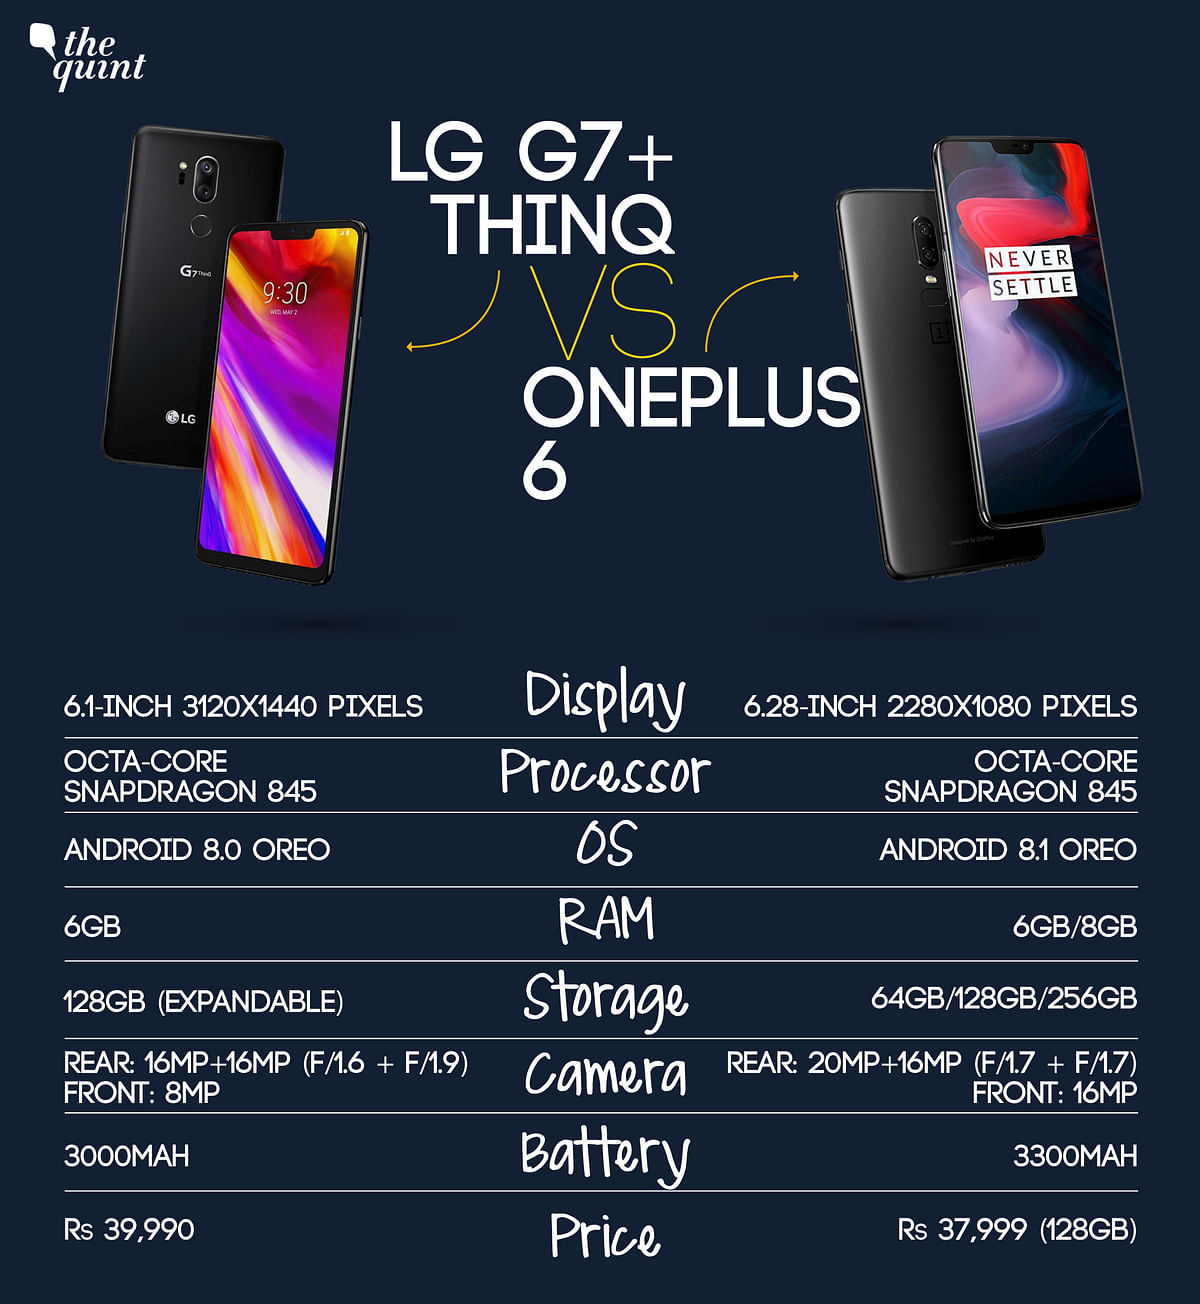 OnePlus 6 vs LG G7+ ThinQ: Which One Should You Buy?